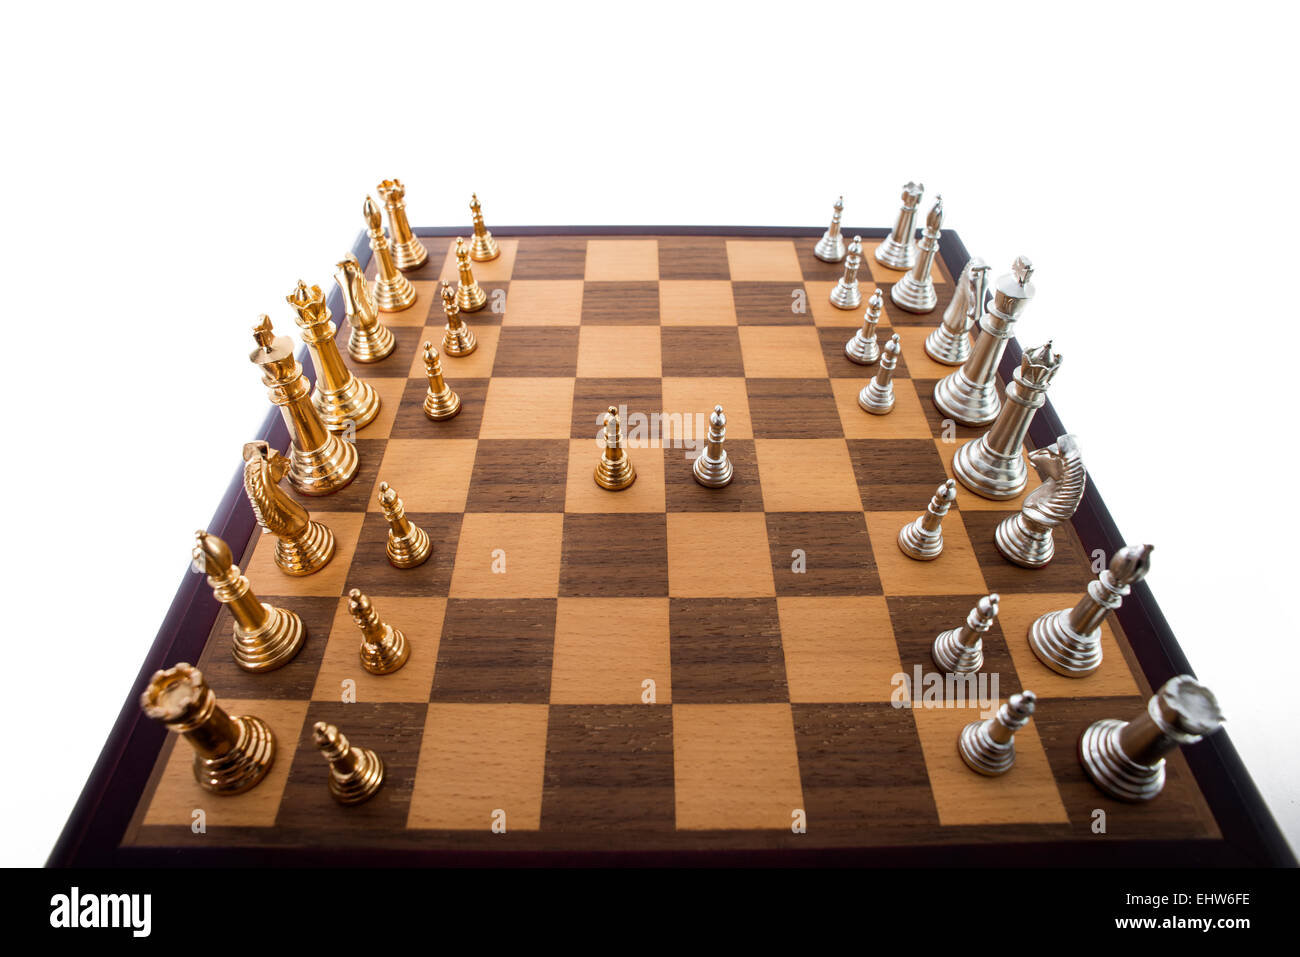 Wooden chess board with gold and silver pieces. - Stock Image